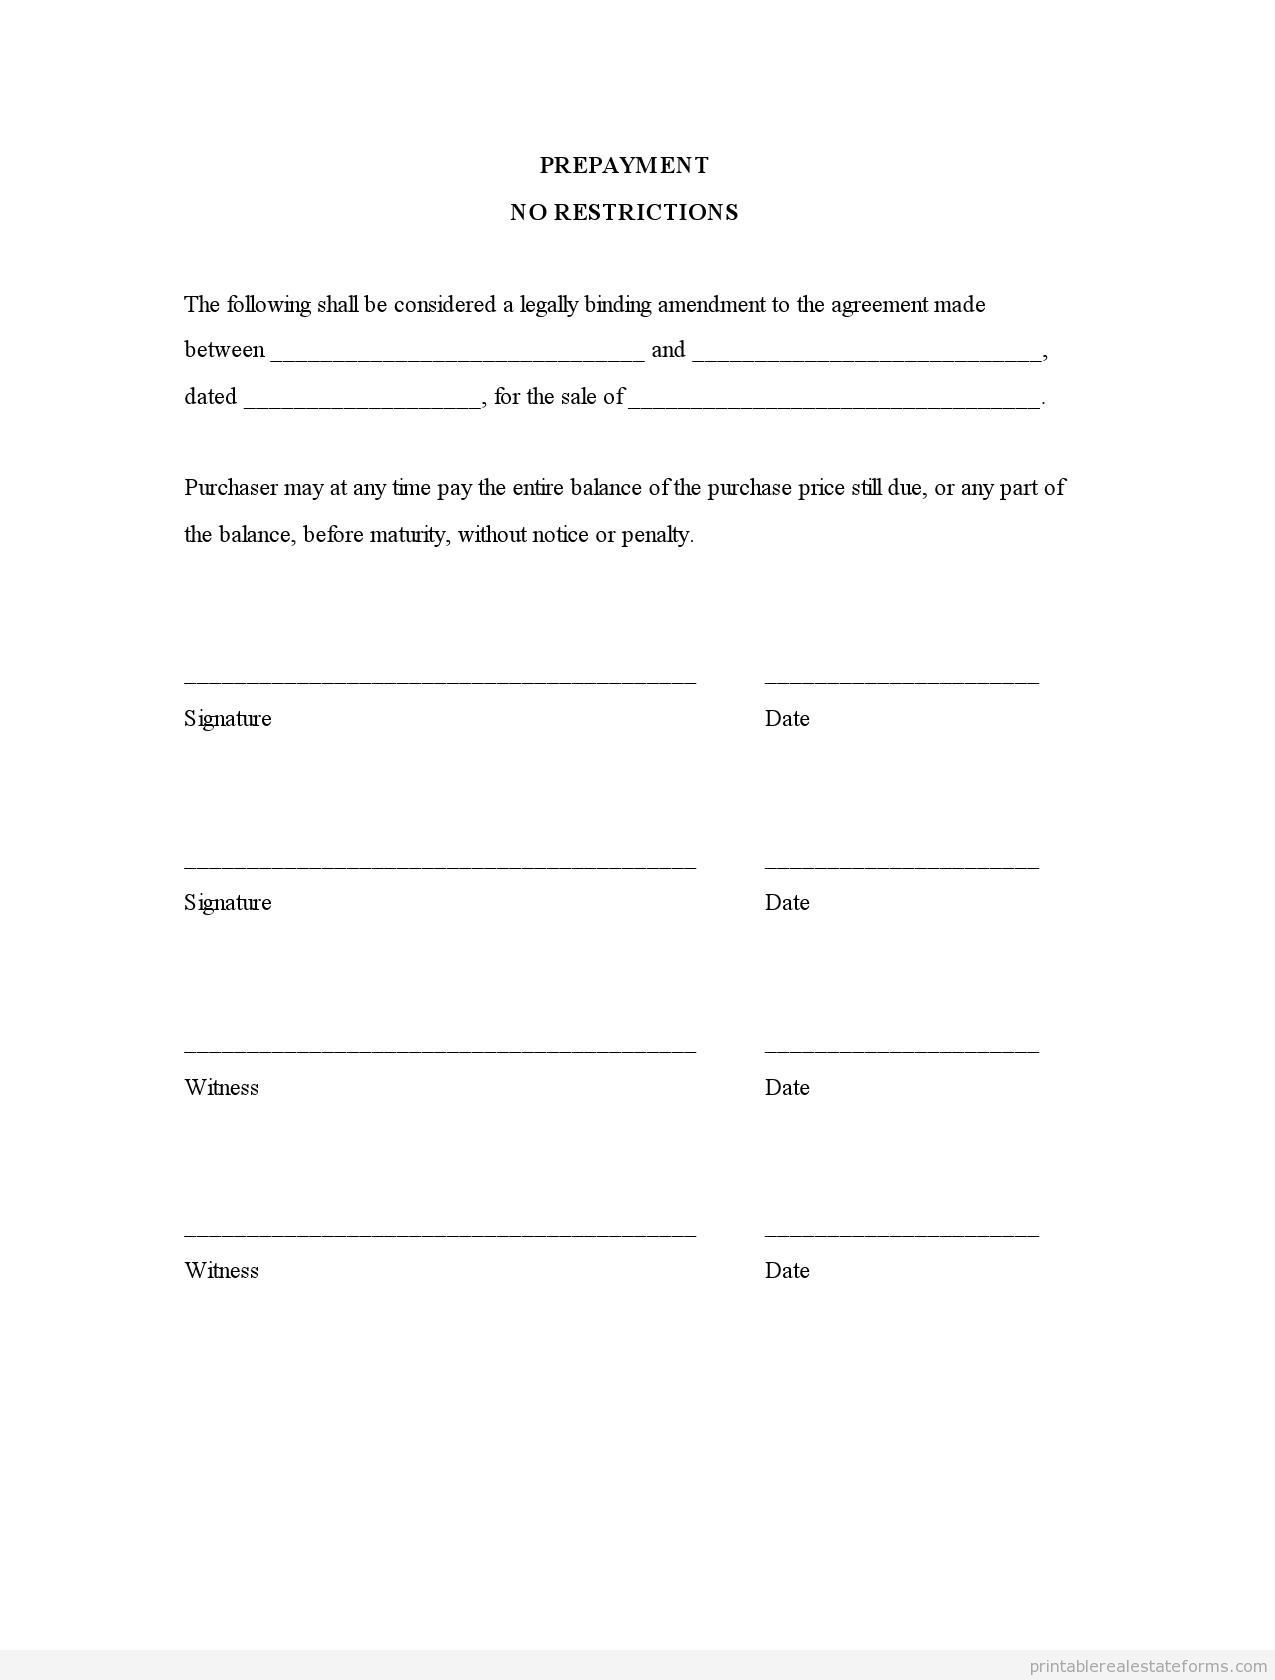 Sample Printable Prepayment No Restrictions Form  Printable Real